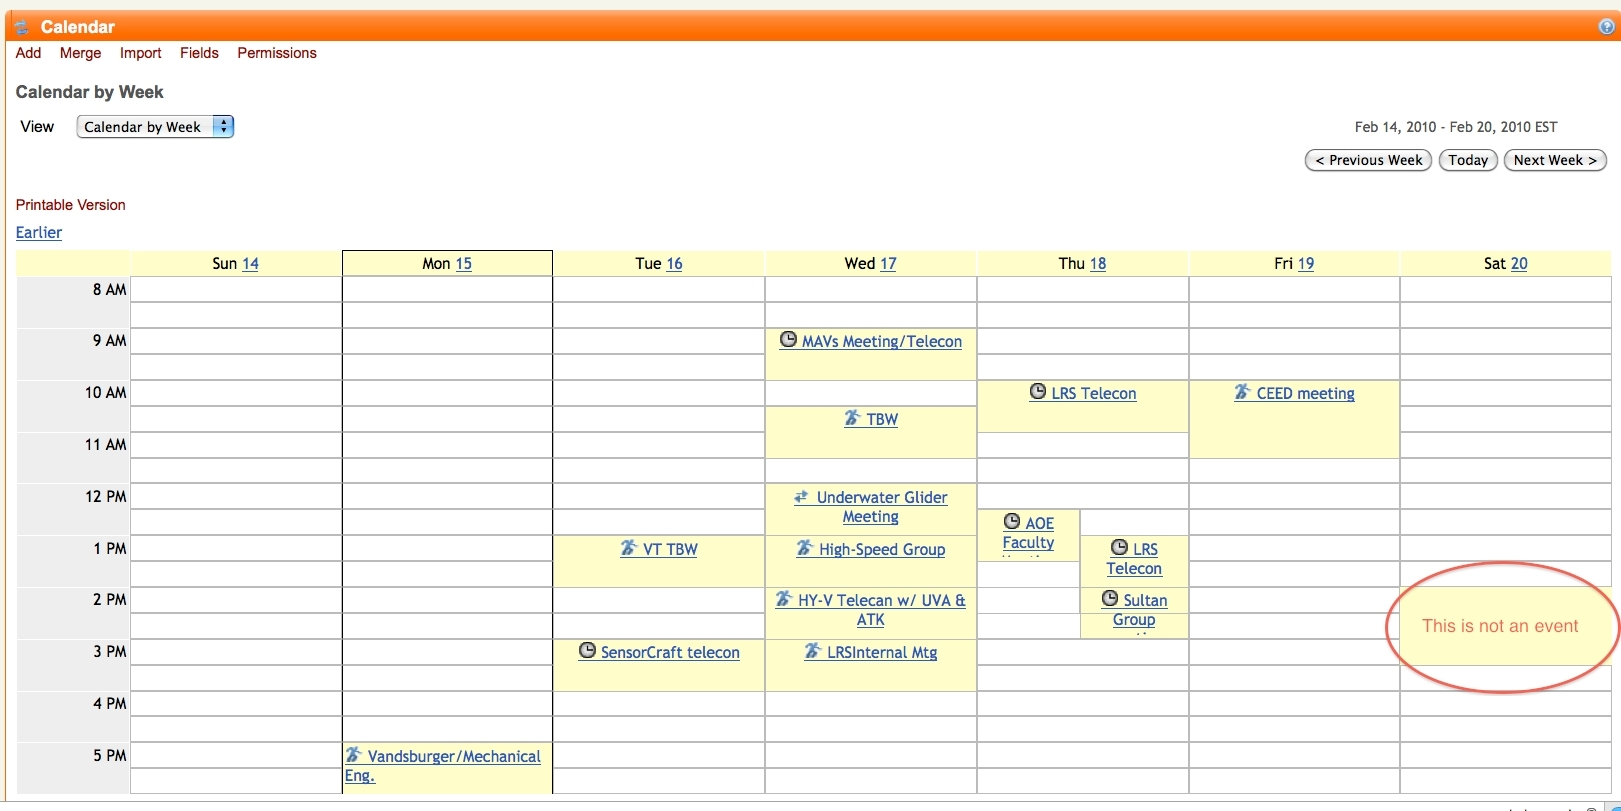 Excel Monthly Calendar Template With Time Slots – Free Monthly regarding Free Calendar With Time Slots Template